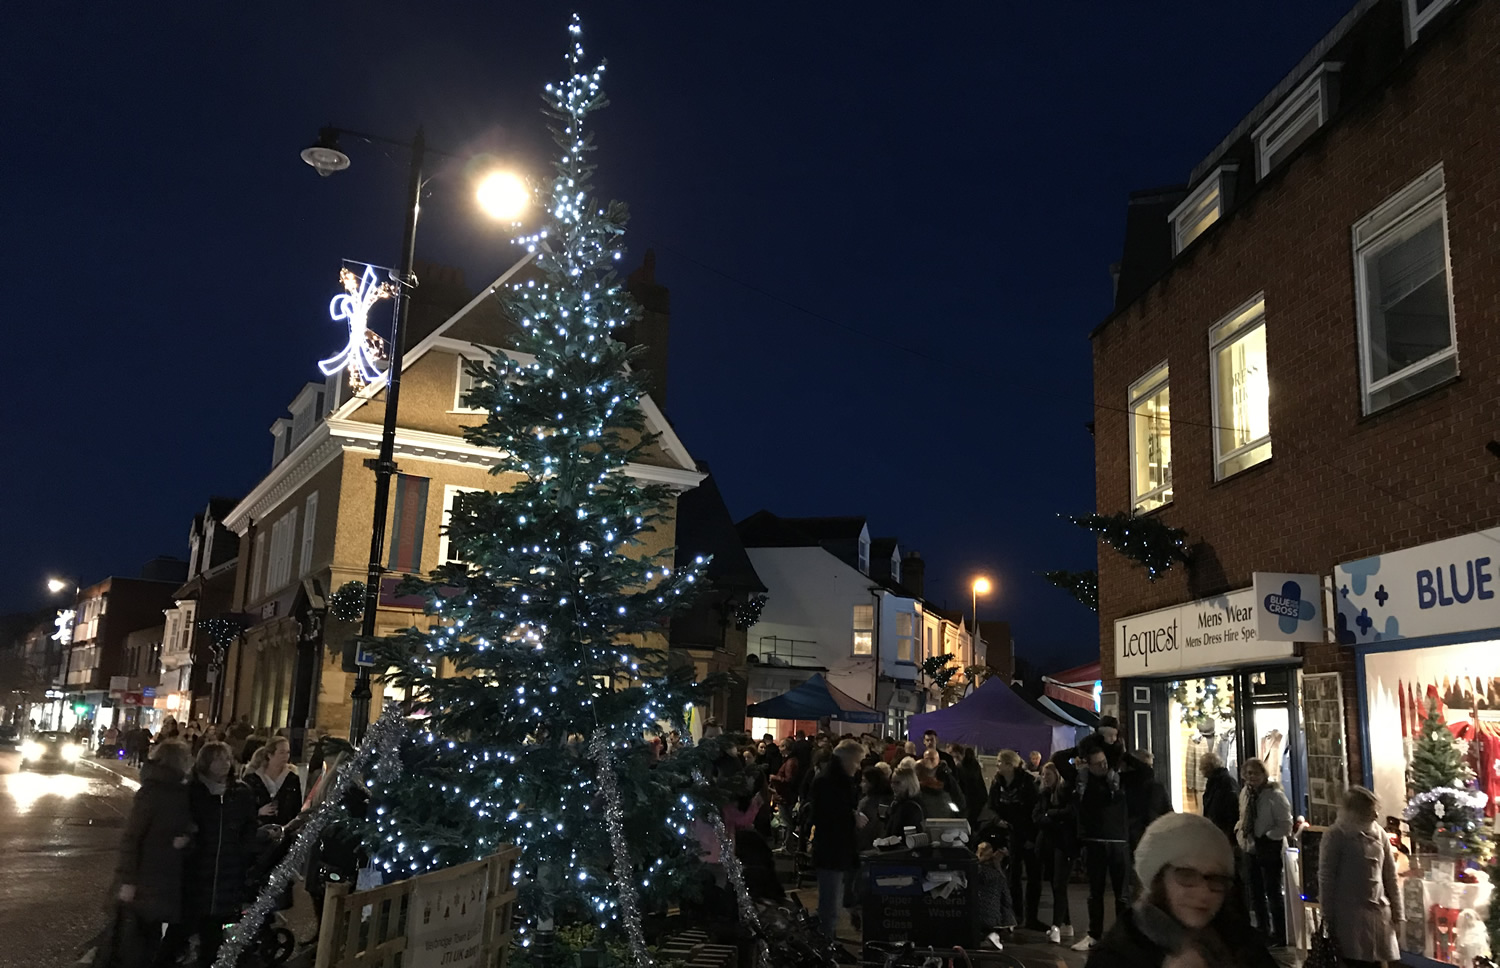 Weybridge Christmas Tree & Market Stalls in Baker Street